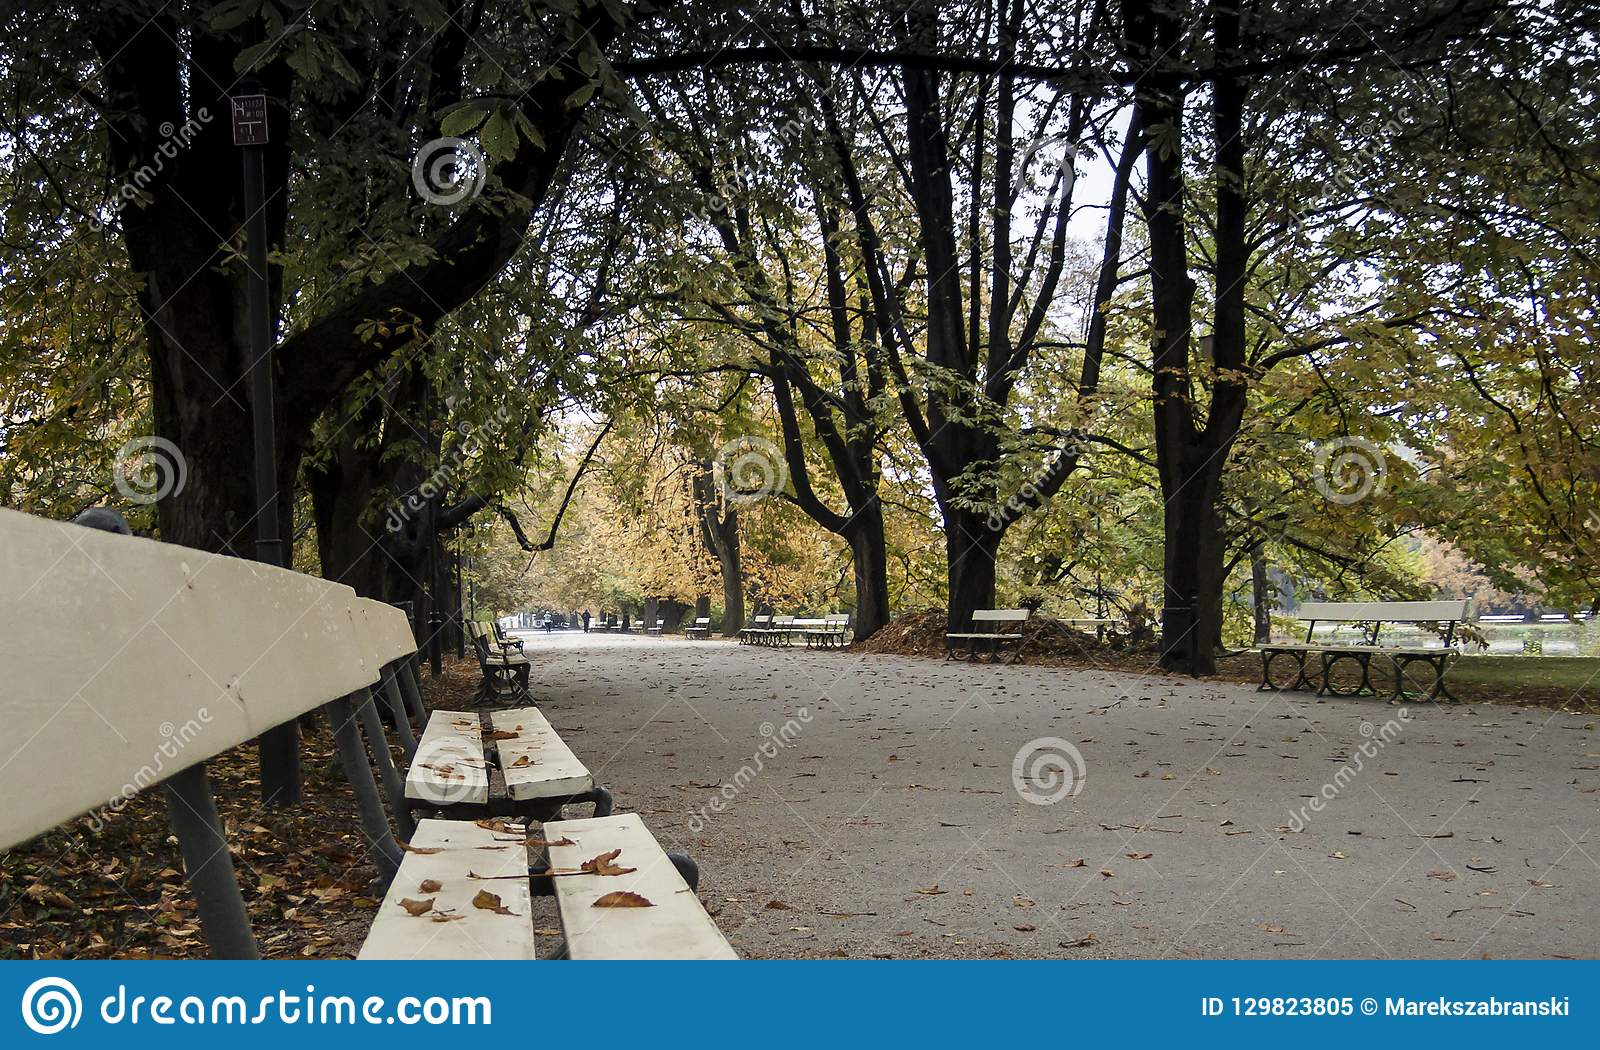 Ujazdowski Park in Warsaw - park alley with benches in autumn